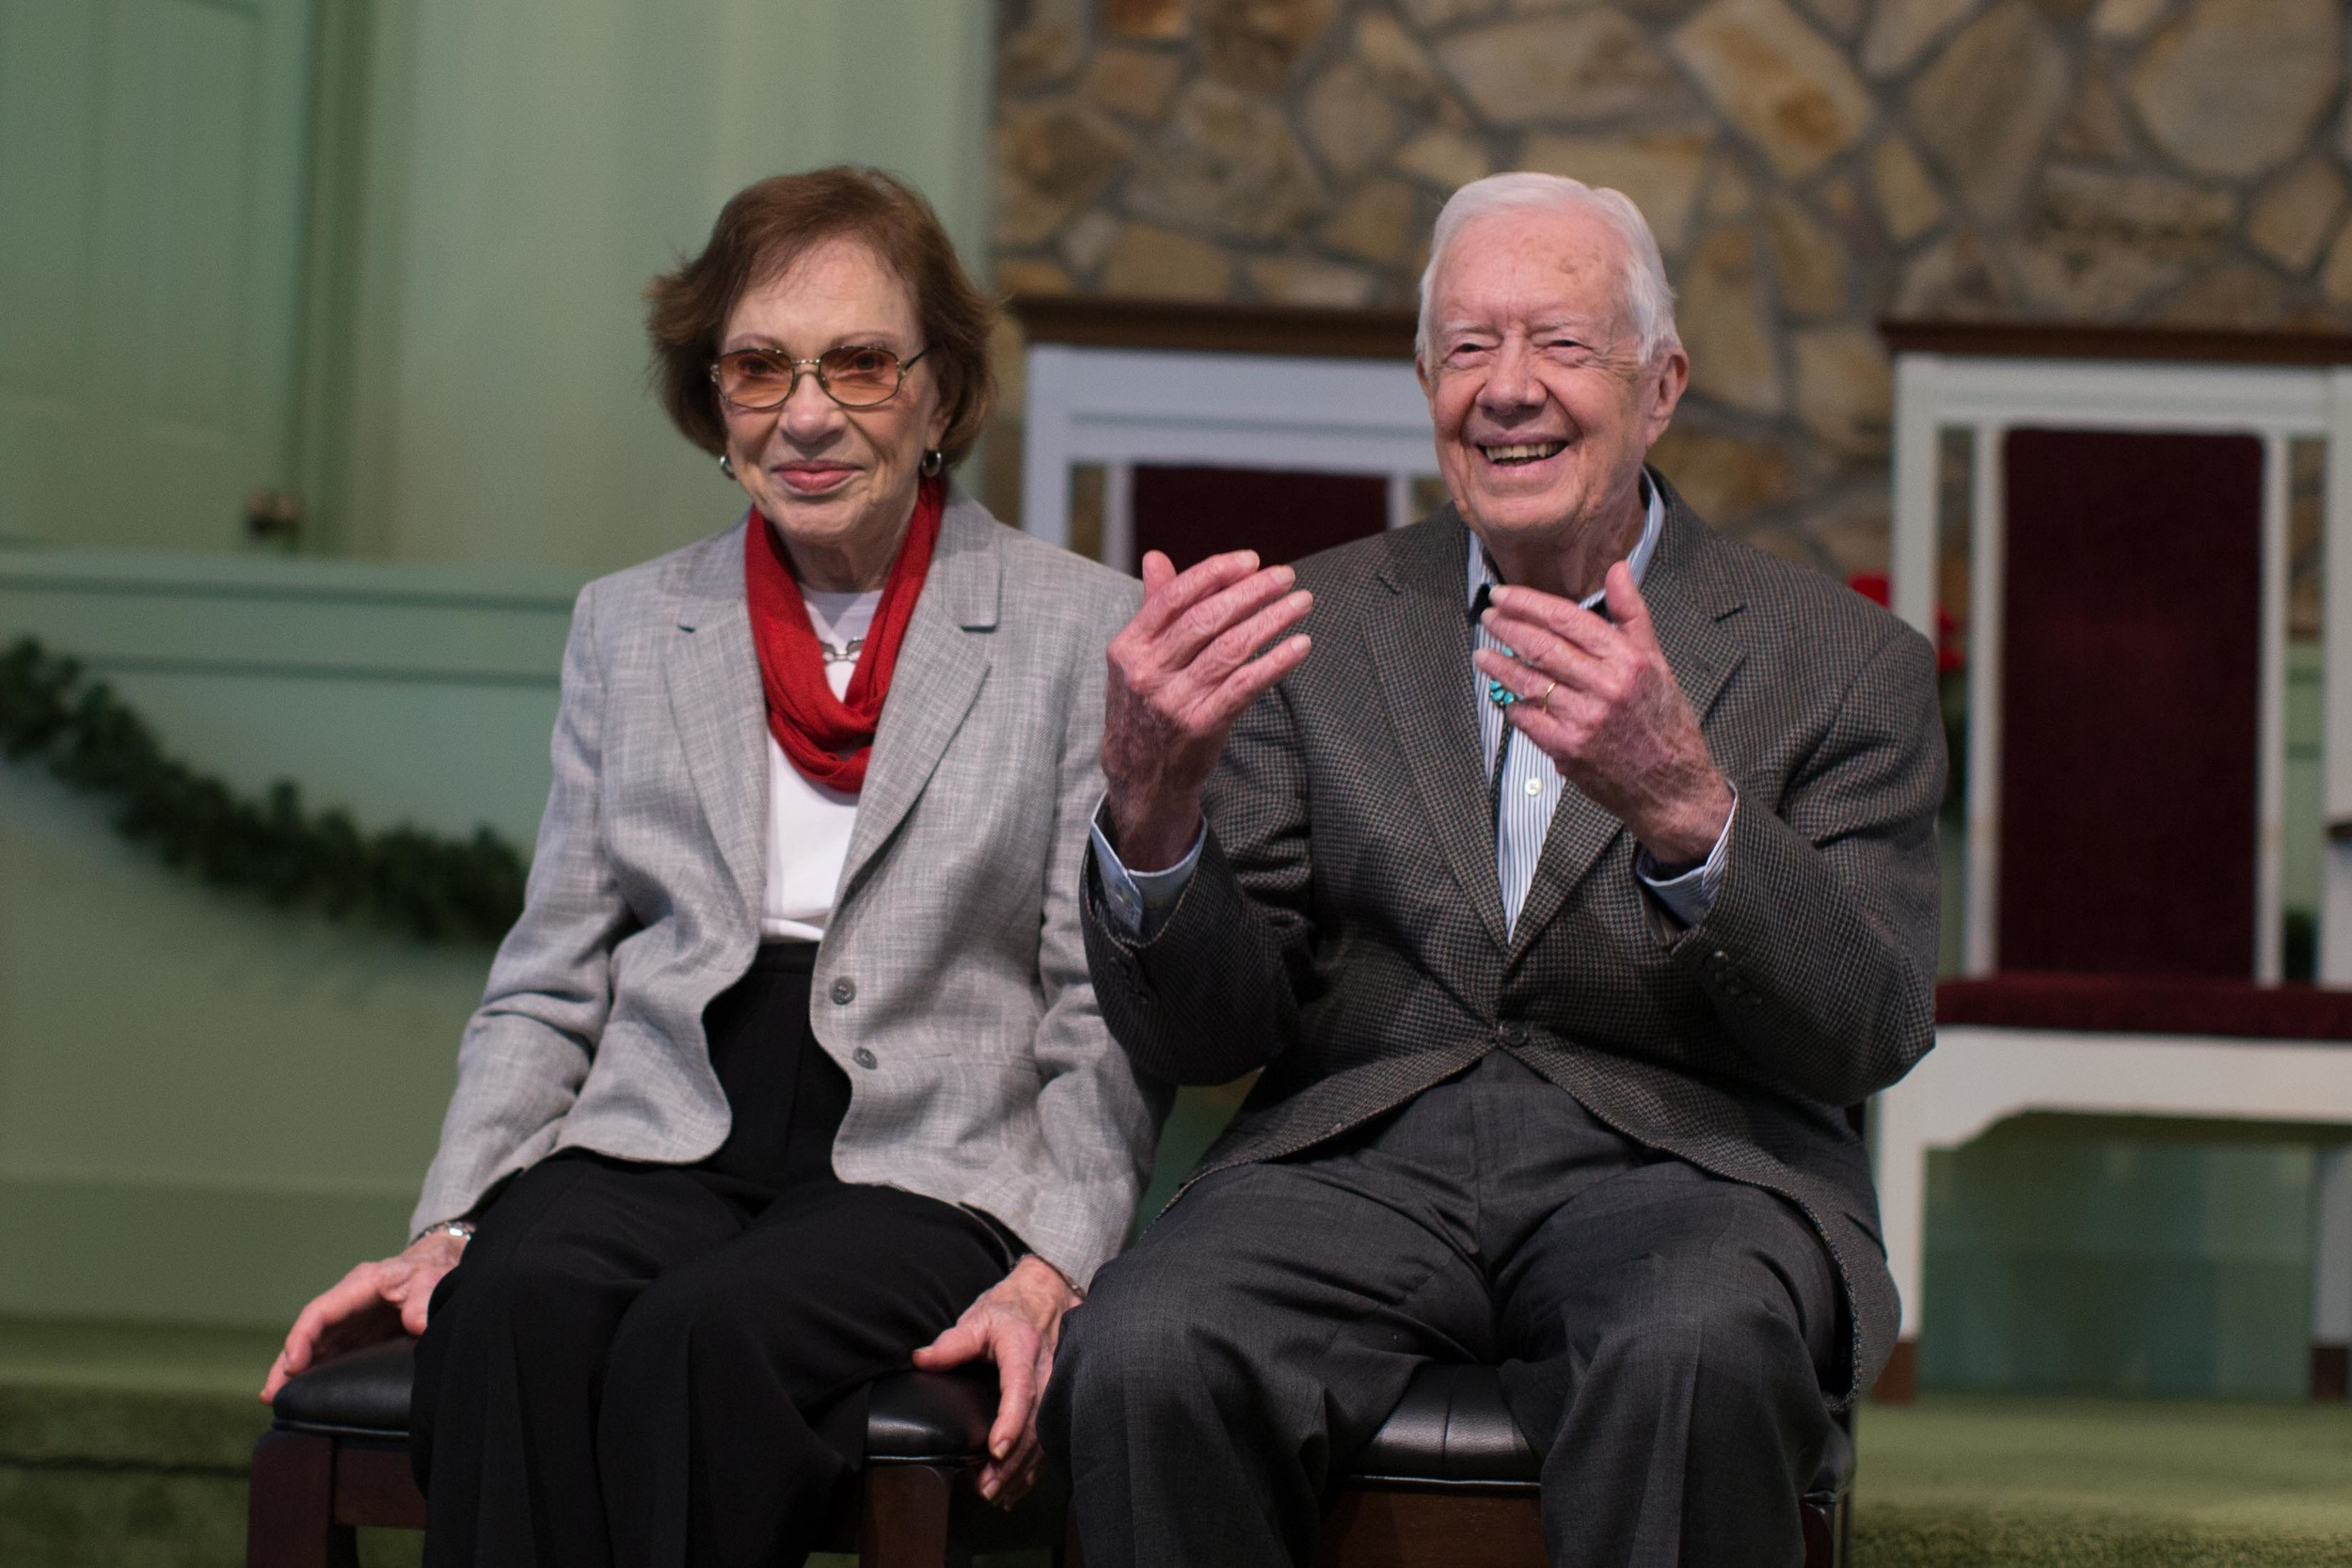 """Former President Jimmy Carter, right, sits with his wife, Rosalynn, as they wait to pose for photos with guests at Maranatha Baptist Church, Sunday, Dec. 13, 2015, in Plains, Ga. A recent MRI showing no cancer on Jimmy Carter's brain is """"very positive"""" news for the former president but will not end his medical treatment, doctors said. Carter, 91, announced on Dec. 6 that doctors found no evidence of the four lesions discovered on his brain this summer and no signs of new cancer growth. (AP Photo/Branden Camp)"""